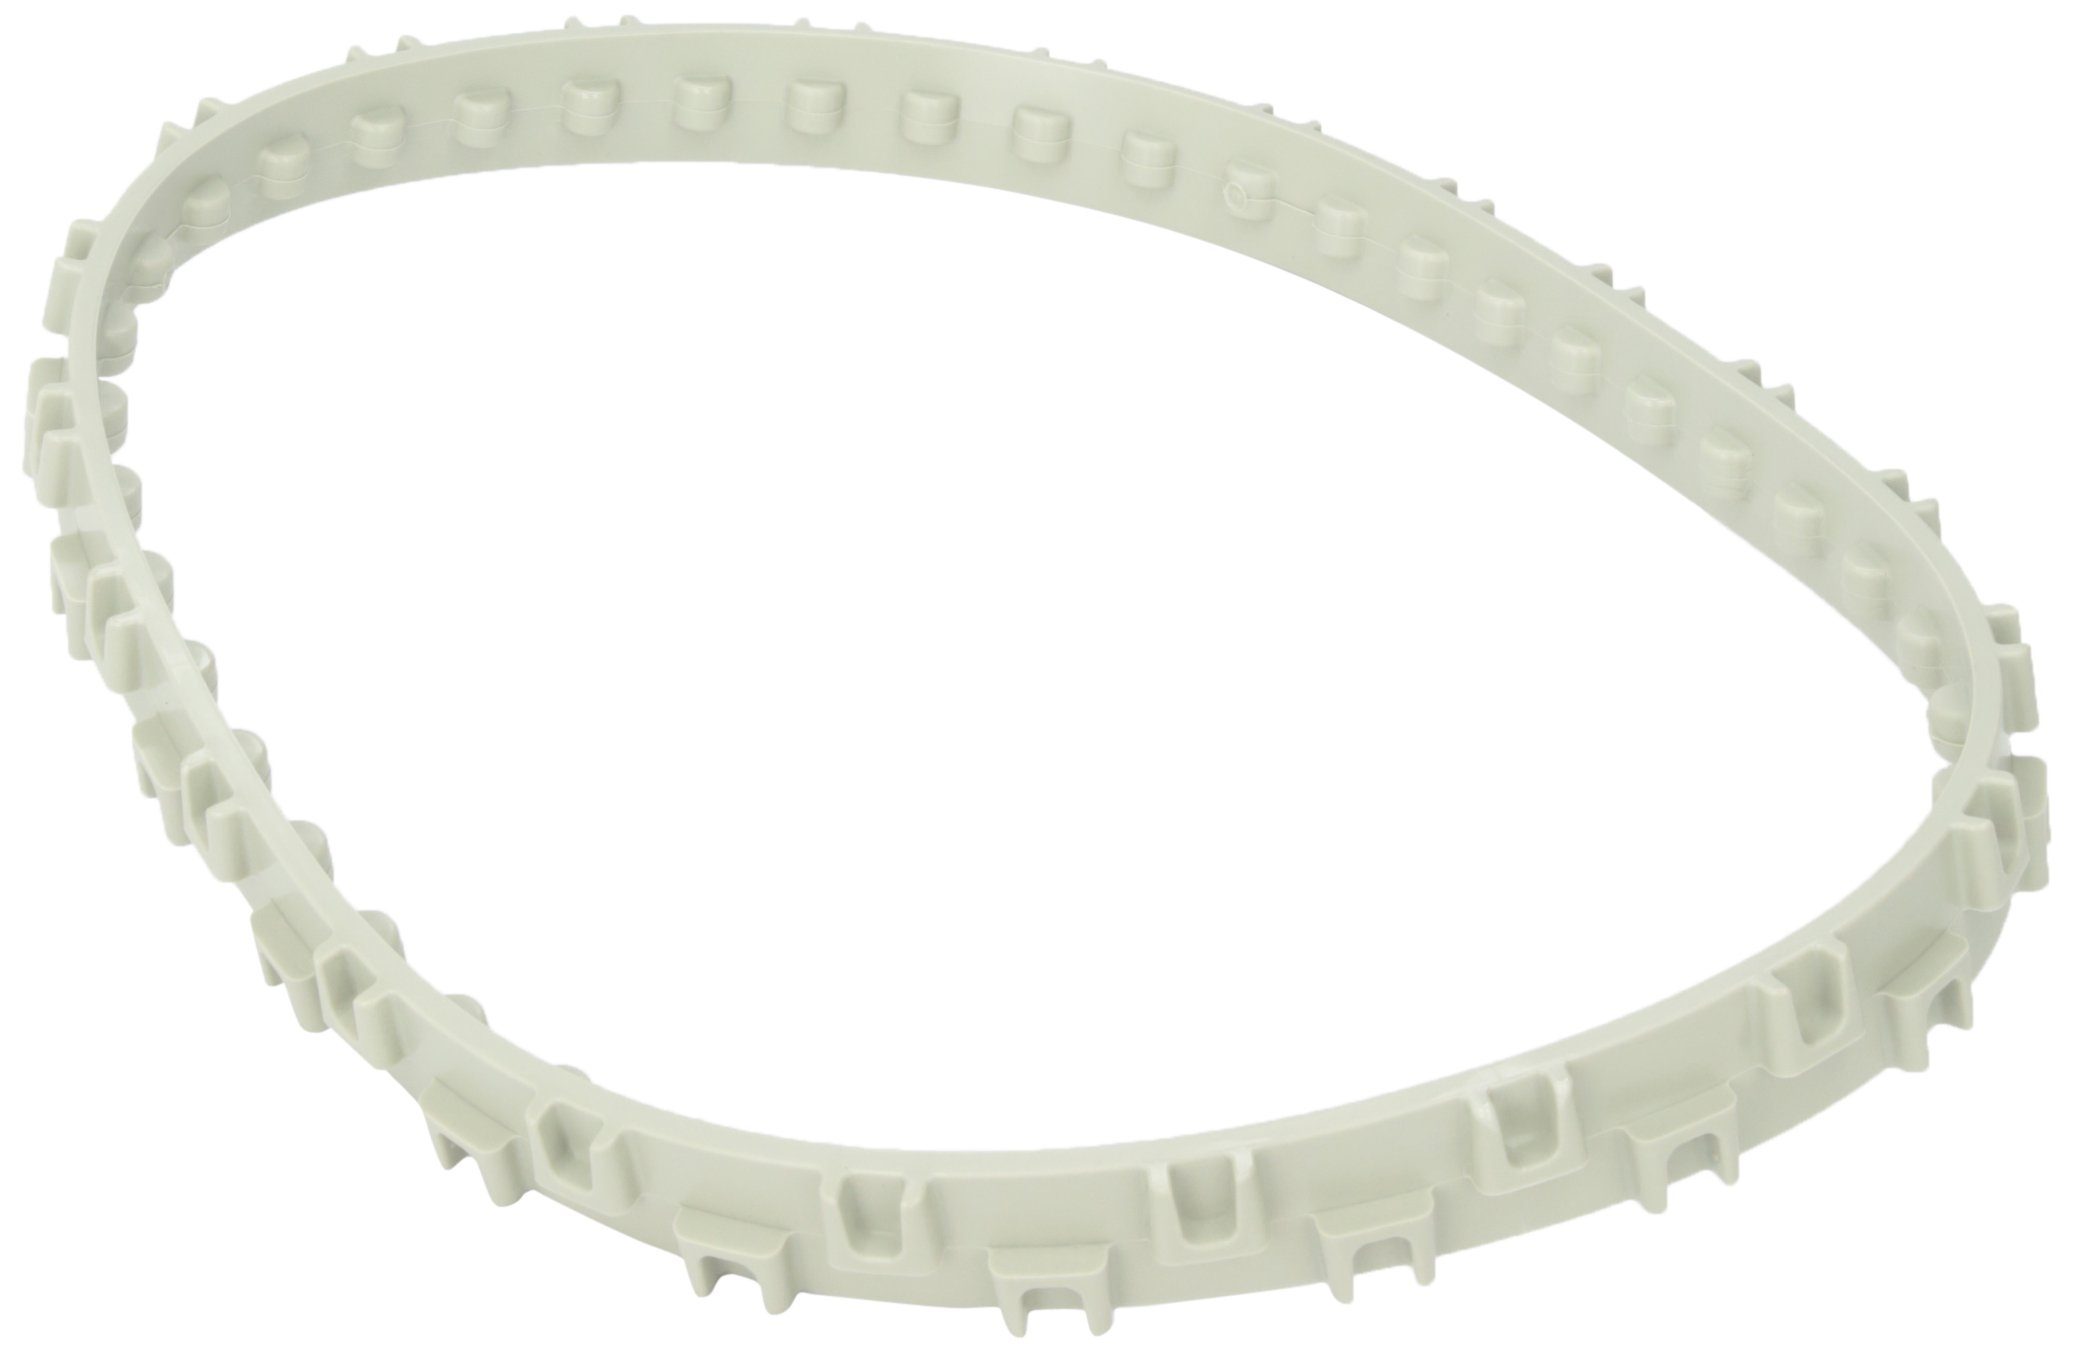 Hayward RCX97501GR Drive Track Belt Replacement for Hayward SharkVac XL Robotic Pool Cleaner